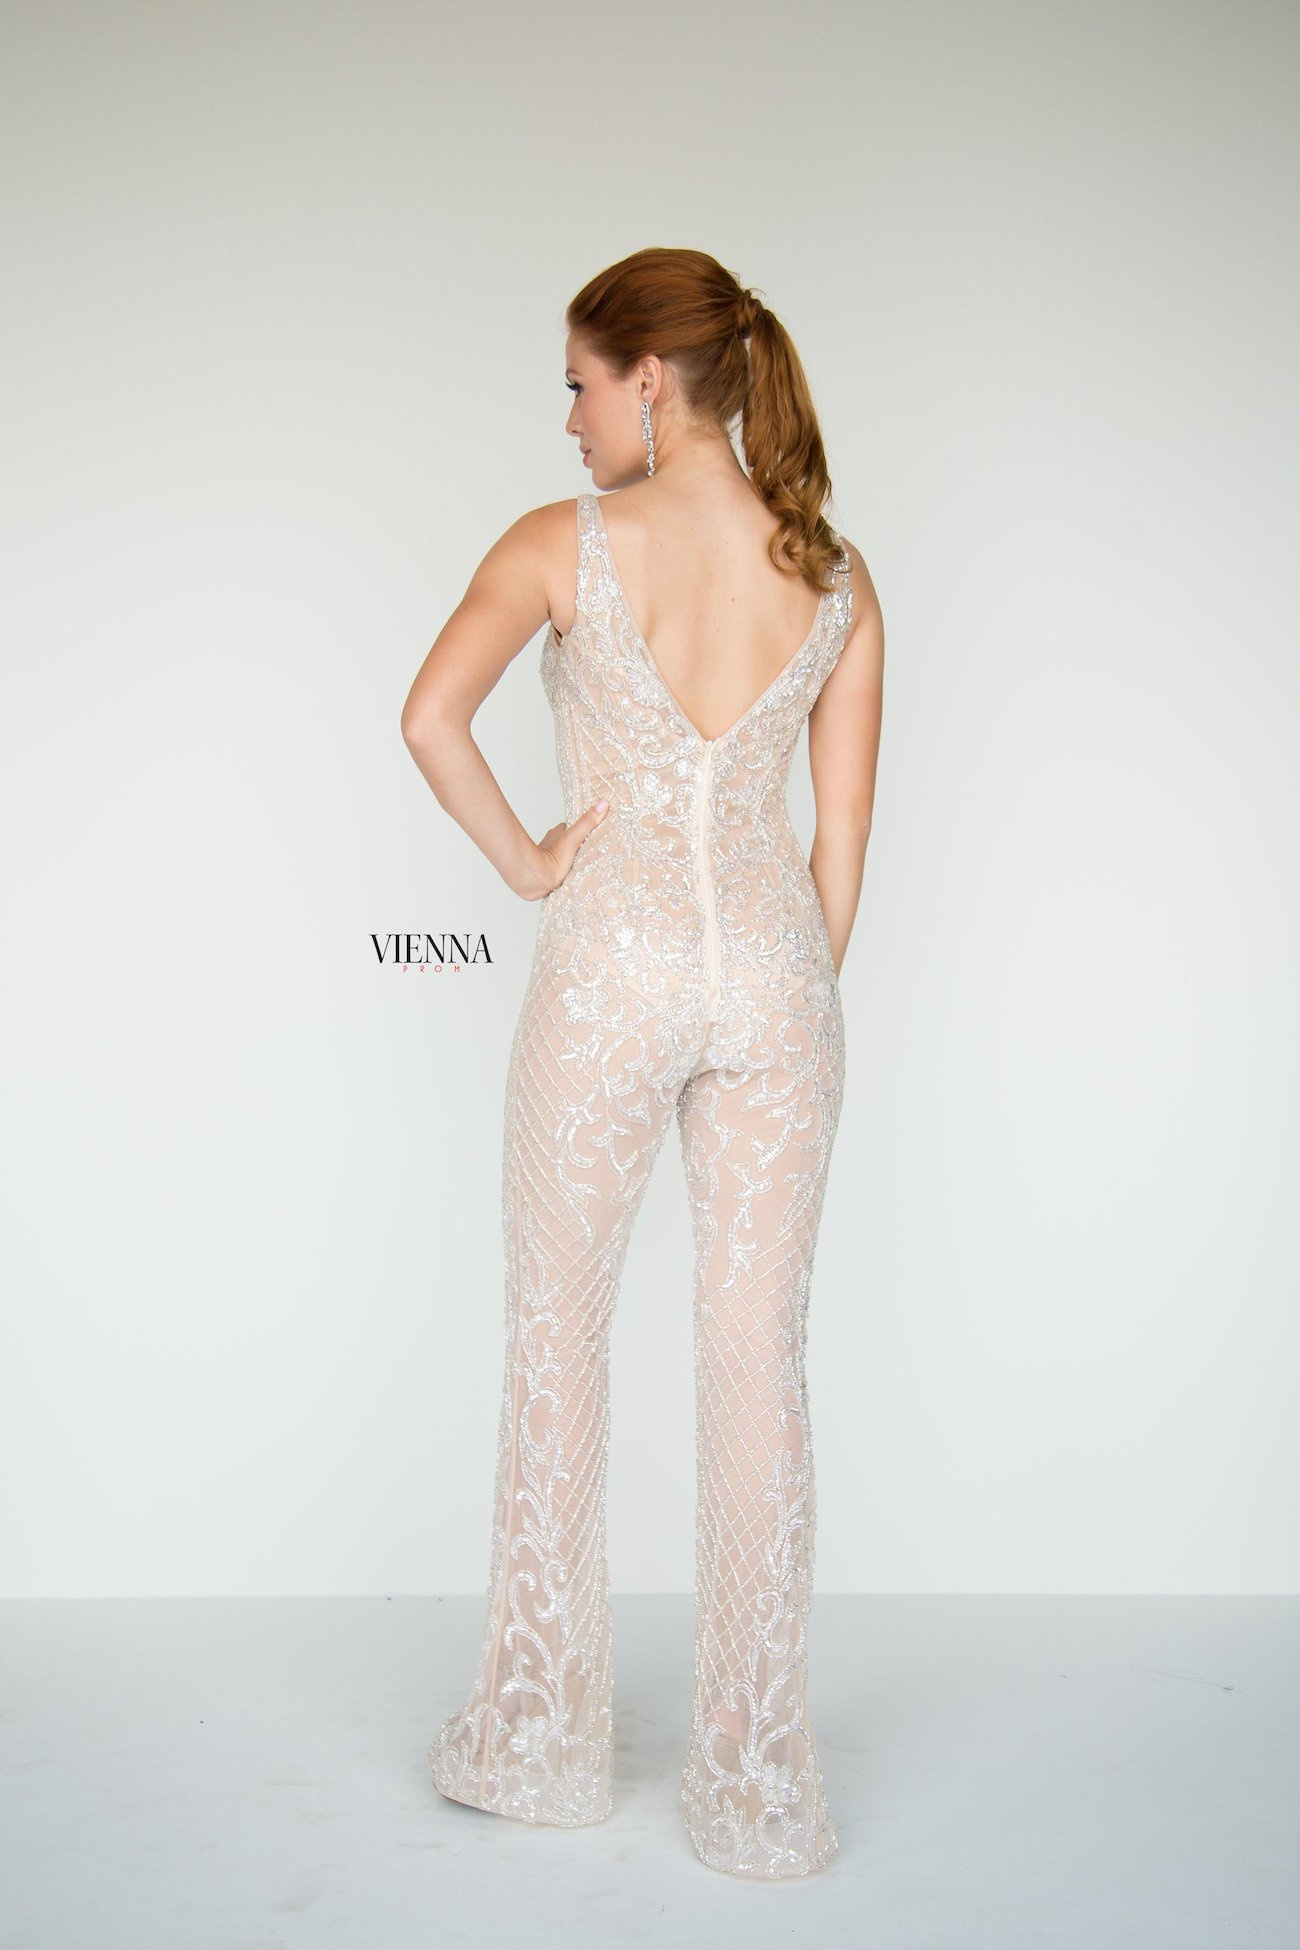 Style 9935 Vienna White Size 6 Fun Fashion Plunge Lace Shiny Romper/Jumpsuit Dress on Queenly